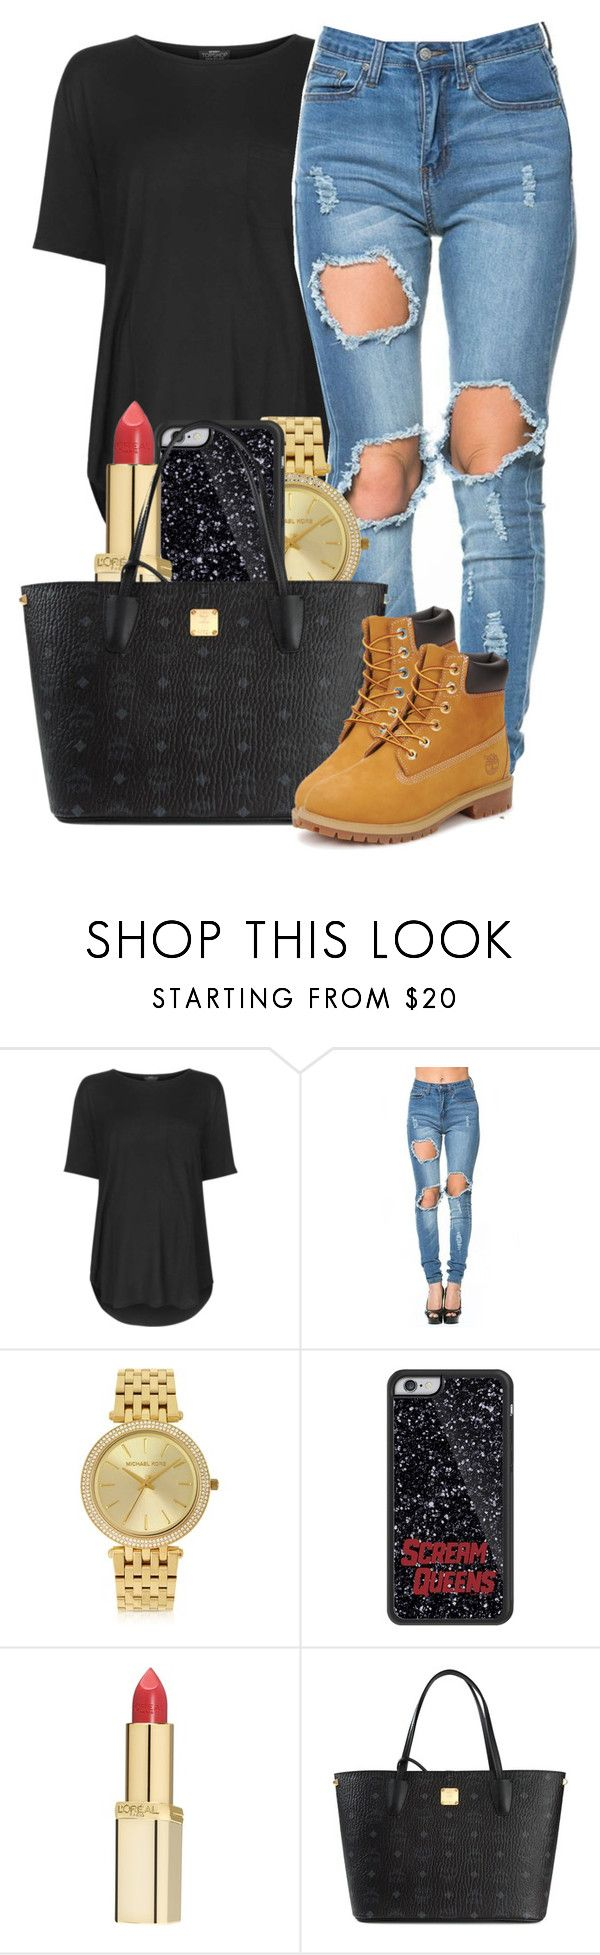 """""""10 17 15"""" by lovleyshackeria ❤ liked on Polyvore featuring Topshop, Michael Kors, L'Oréal Paris, MCM and Timberland"""